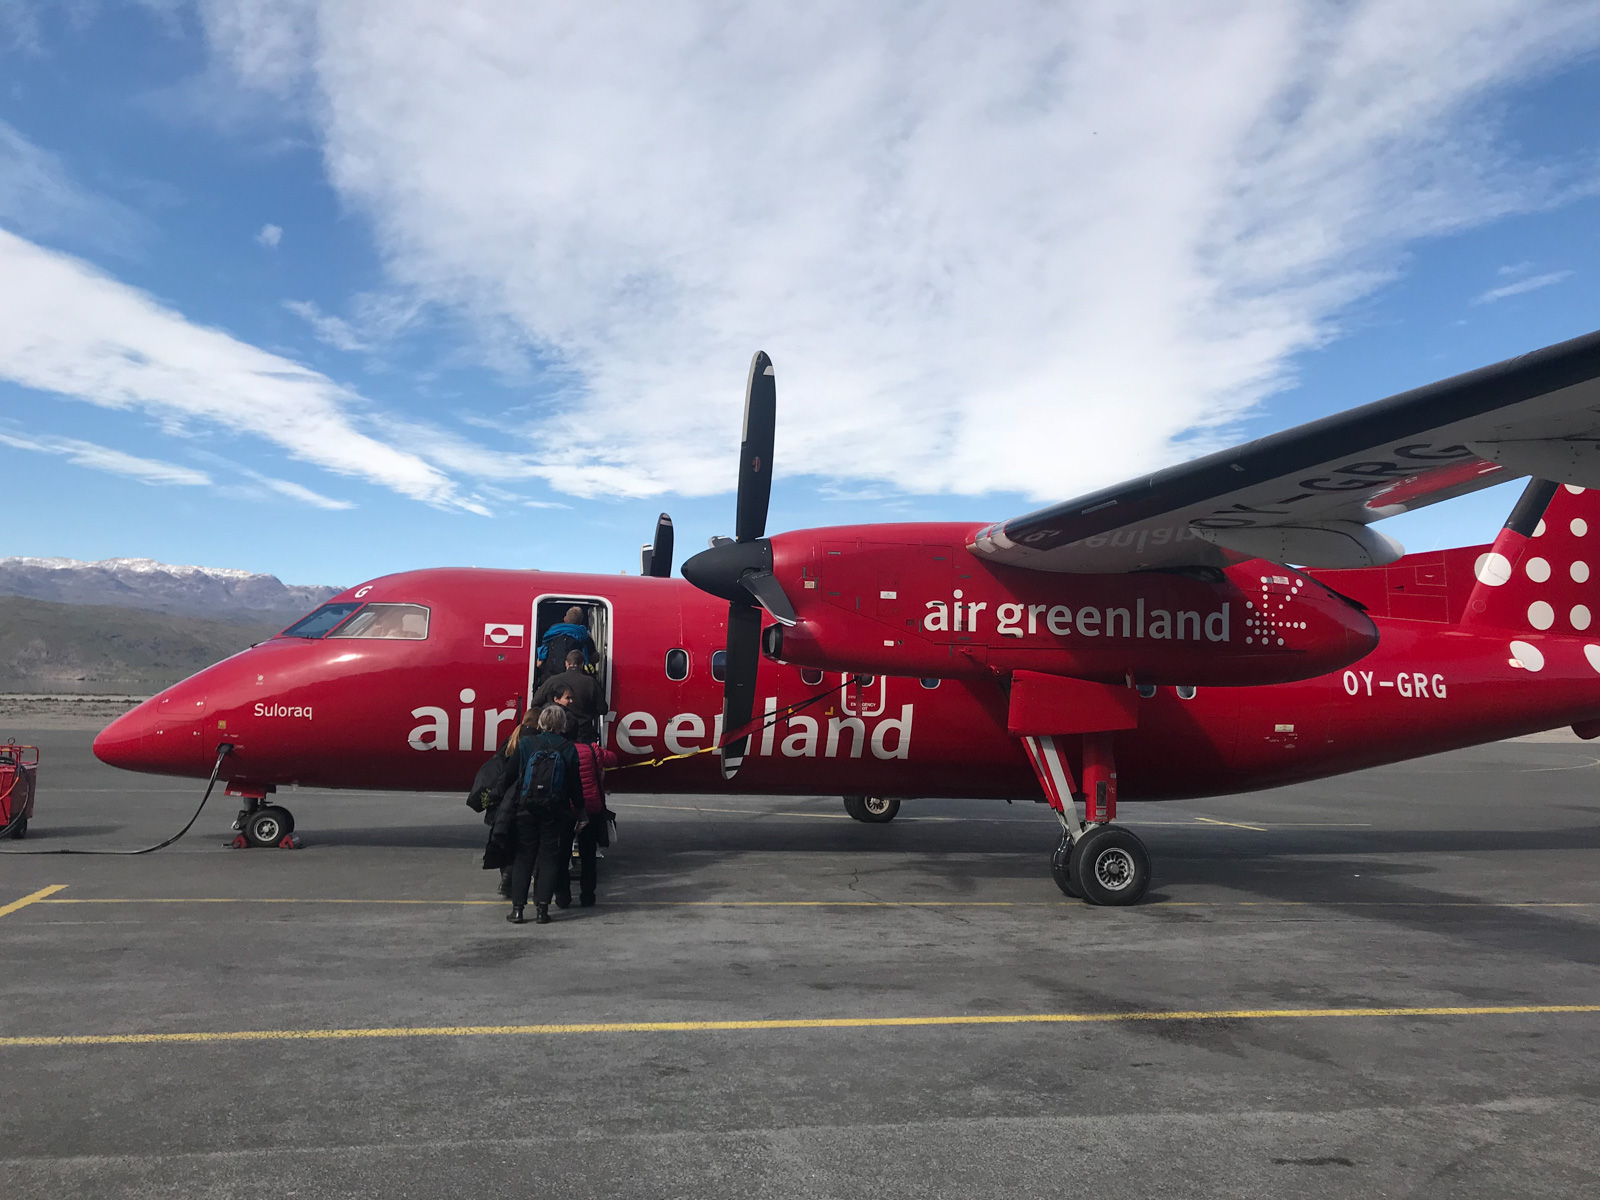 Photo: Die roten Turboprop-Maschinen von Air Greenland